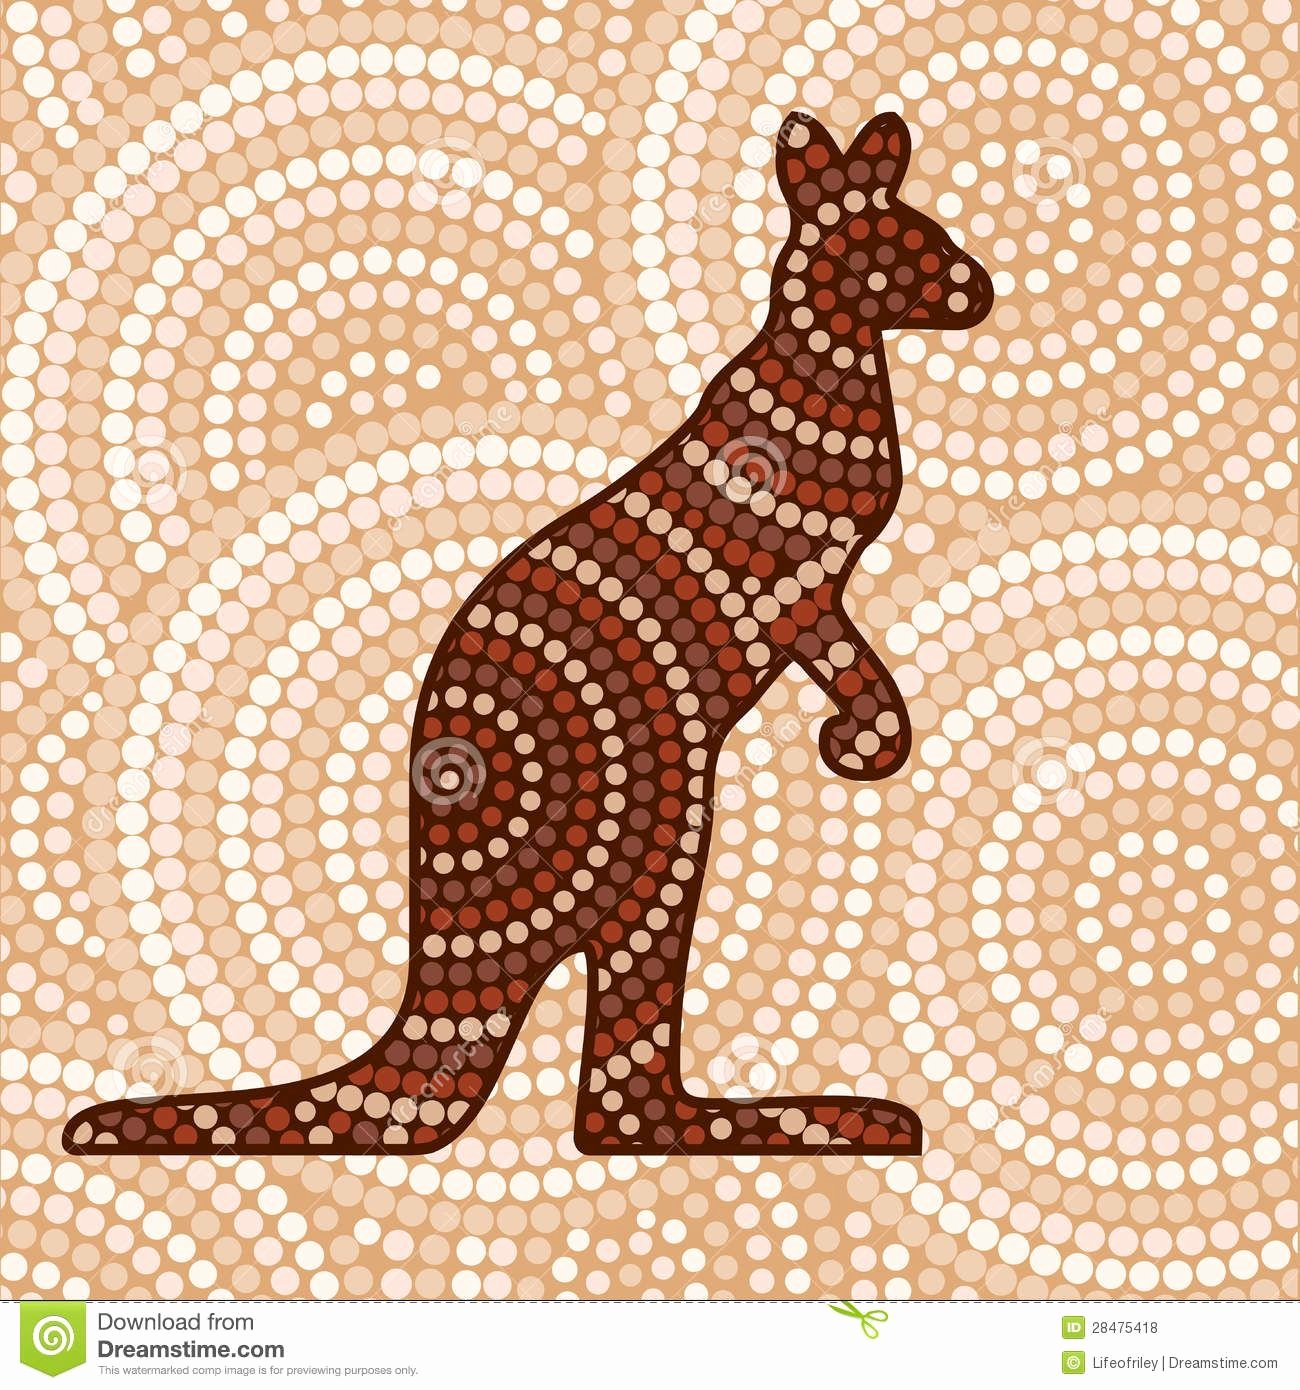 Aboriginal Dot Painting Templates Beautiful Aboriginal Stock Illustrations Vectors & Clipart